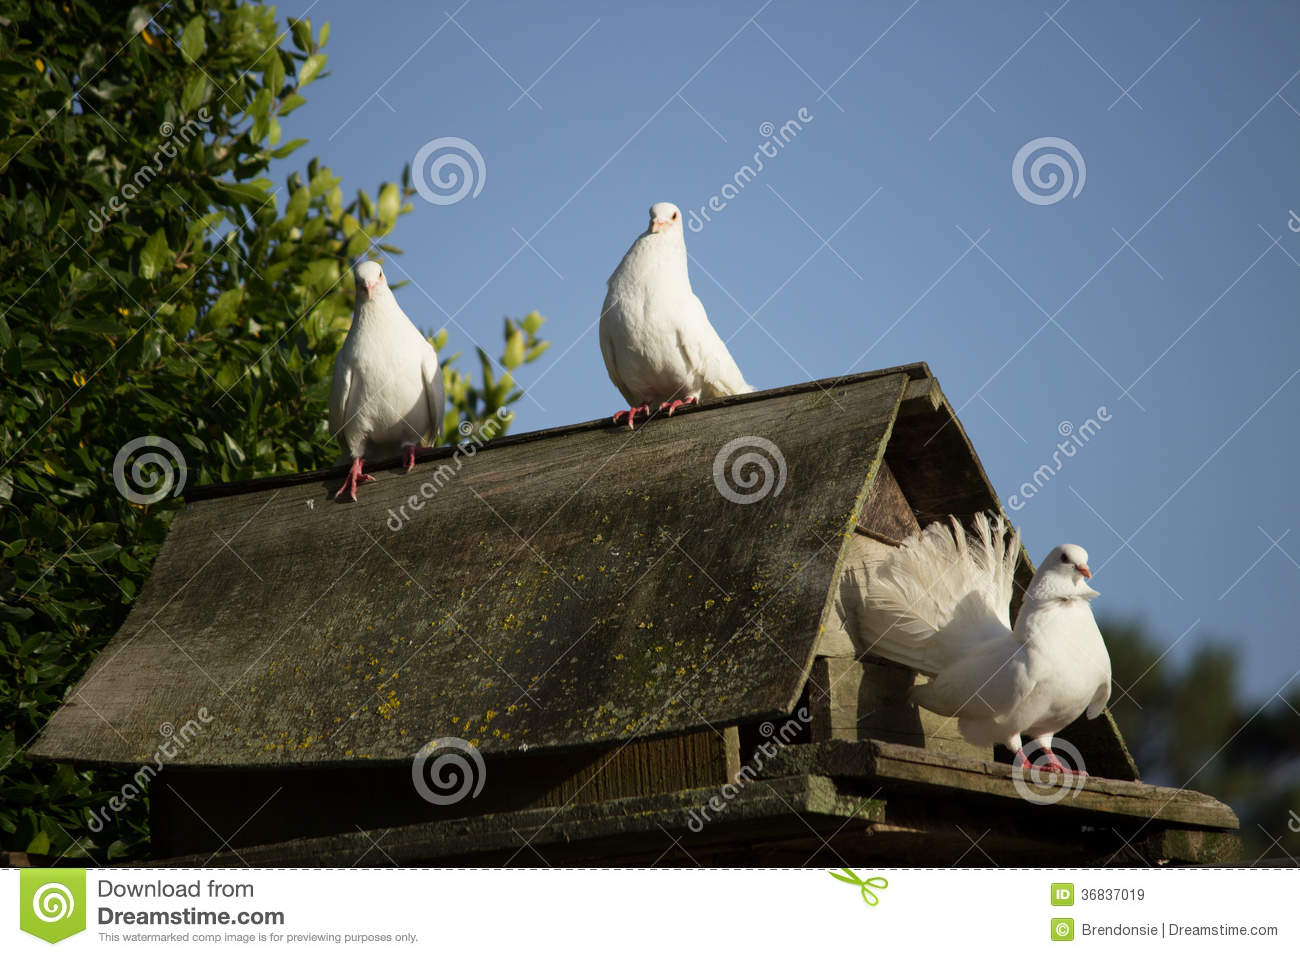 Dove house royalty free stock images image 36837019 for Dove bird house